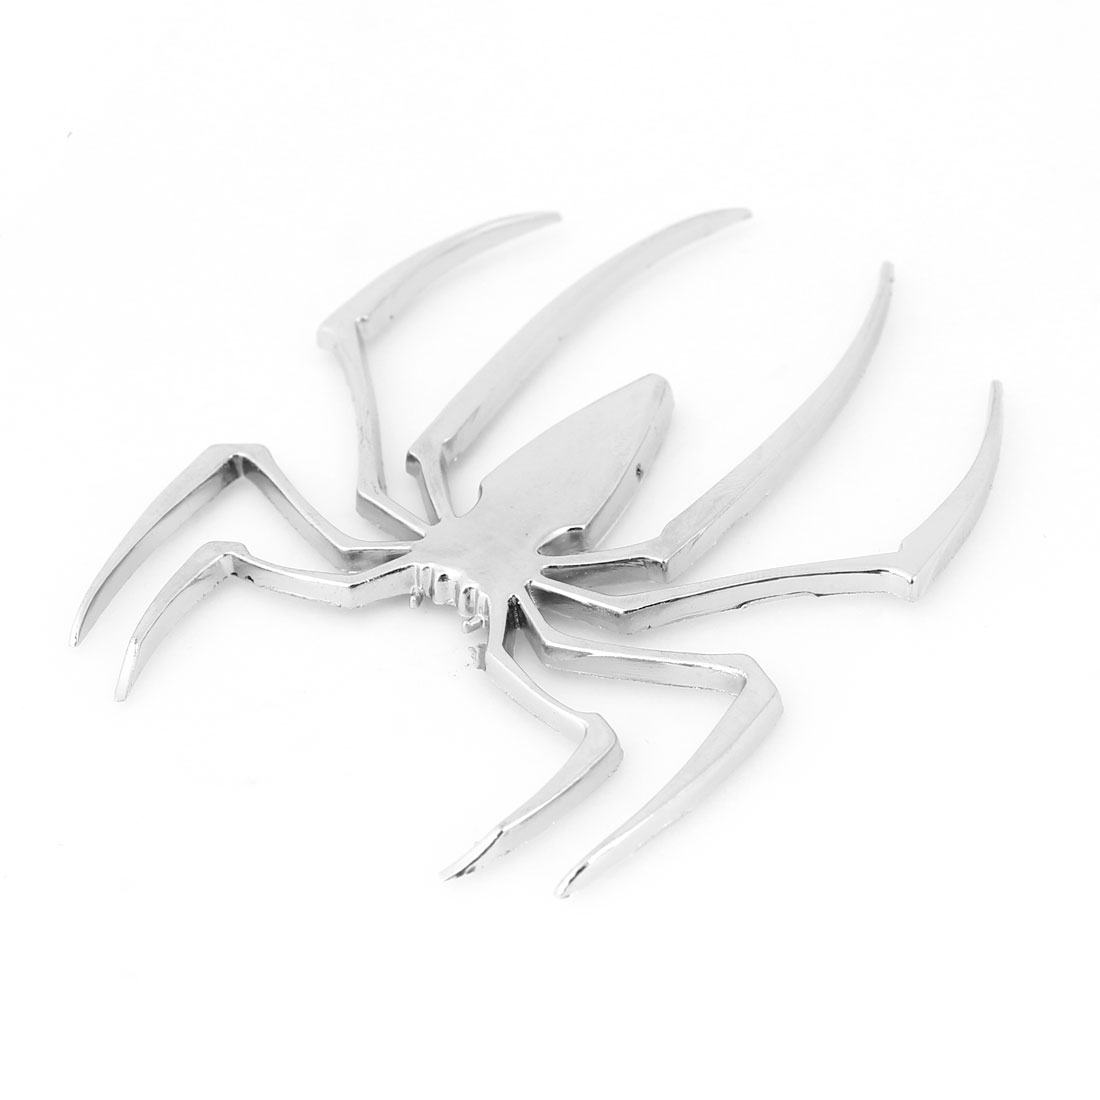 Metal 3D Silver Tone Spider Shape Sticker Badge Emblem for Auto Decor